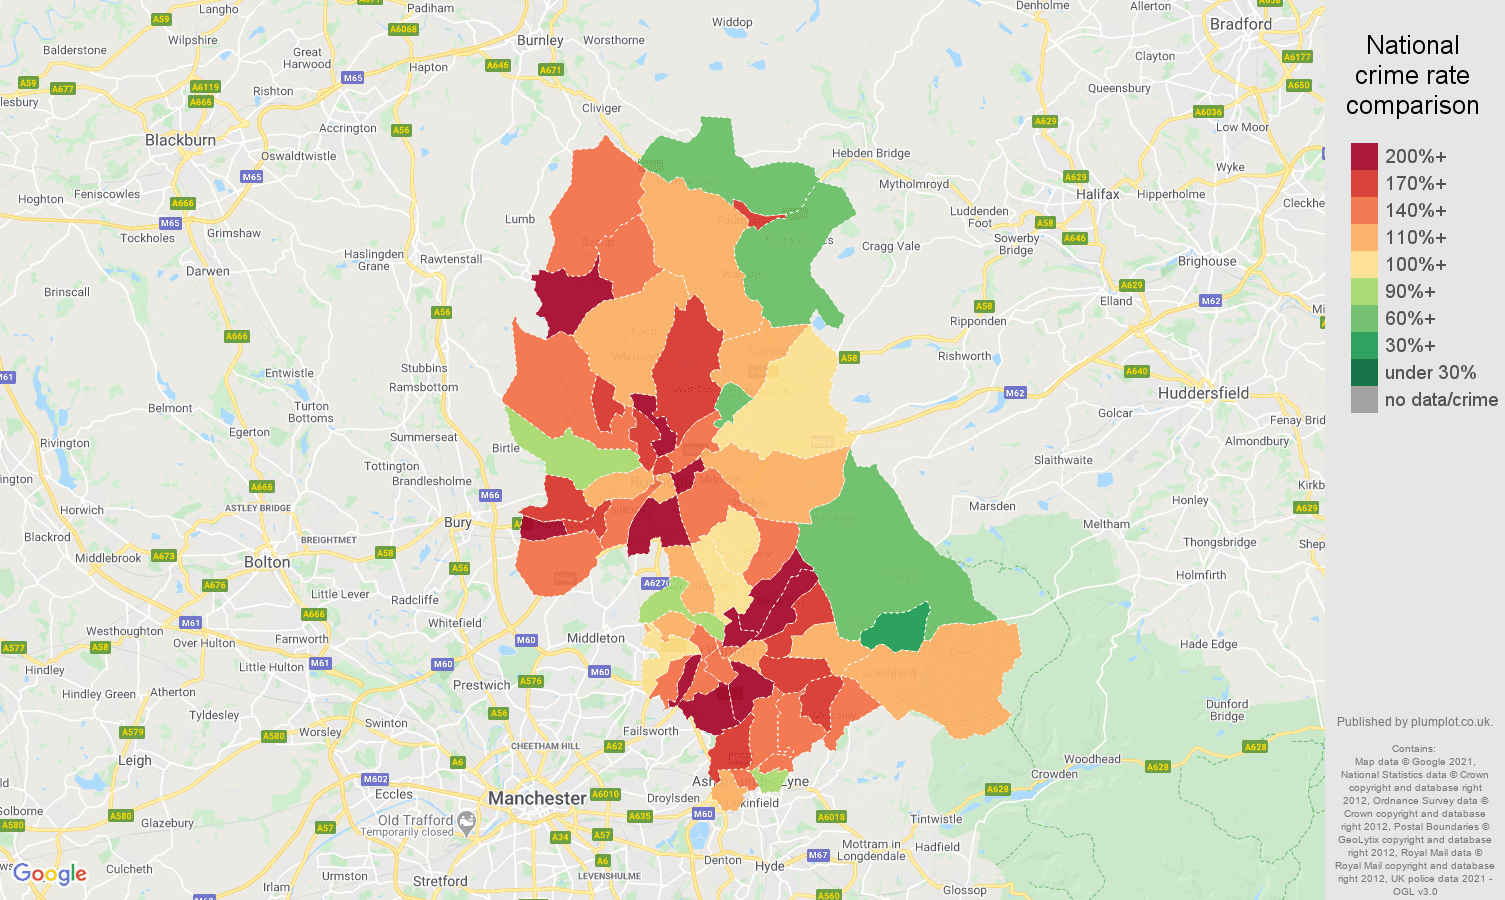 Oldham criminal damage and arson crime rate comparison map